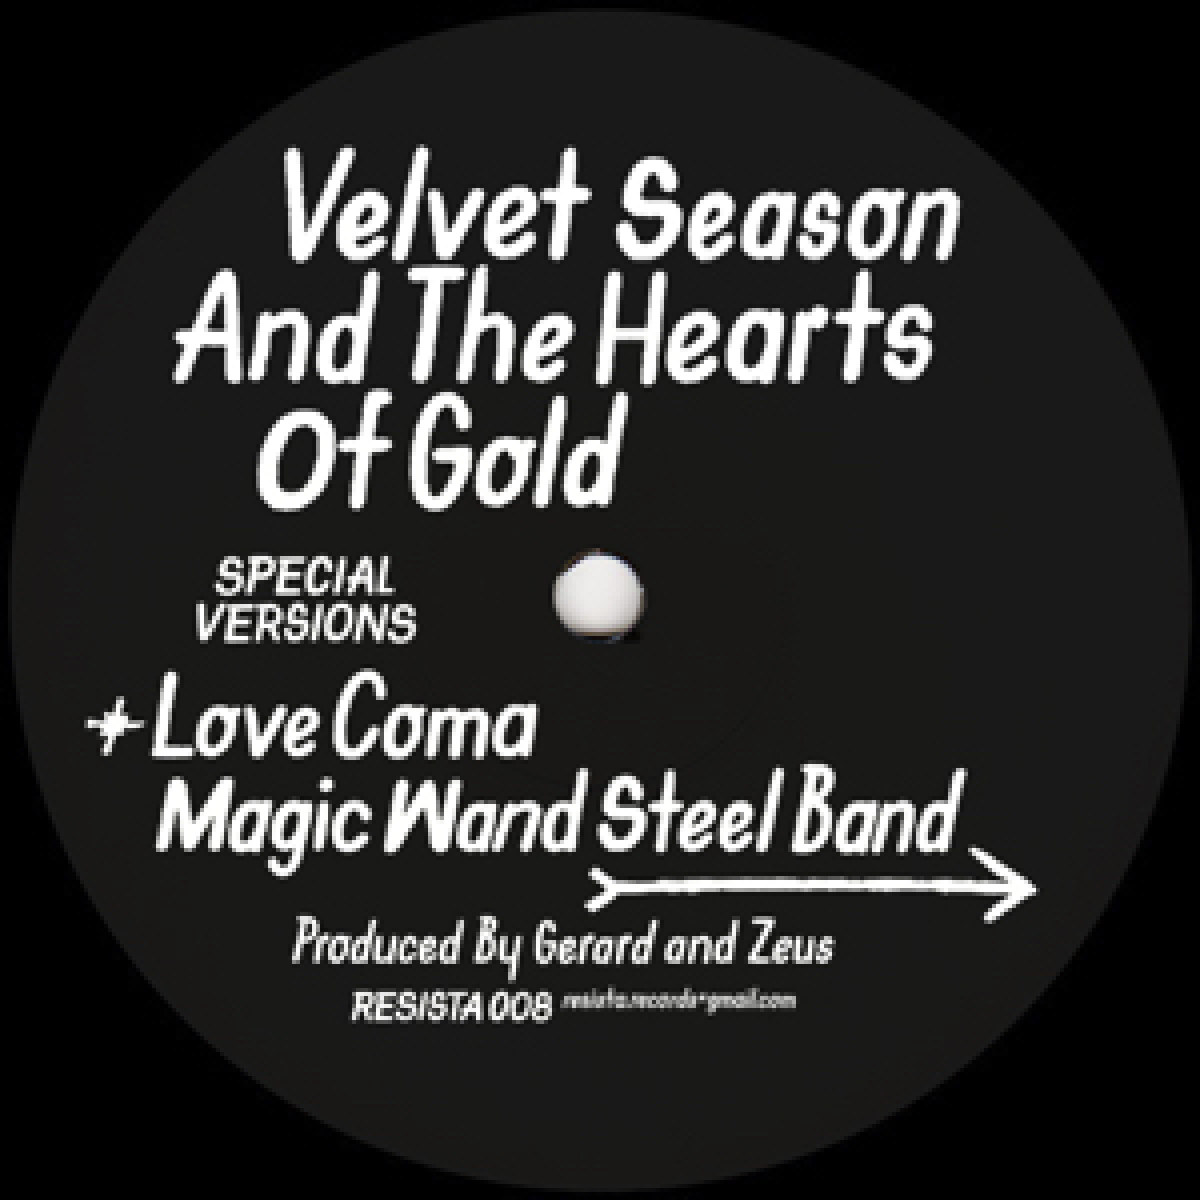 Magic Wand Steel Band / Love Coma